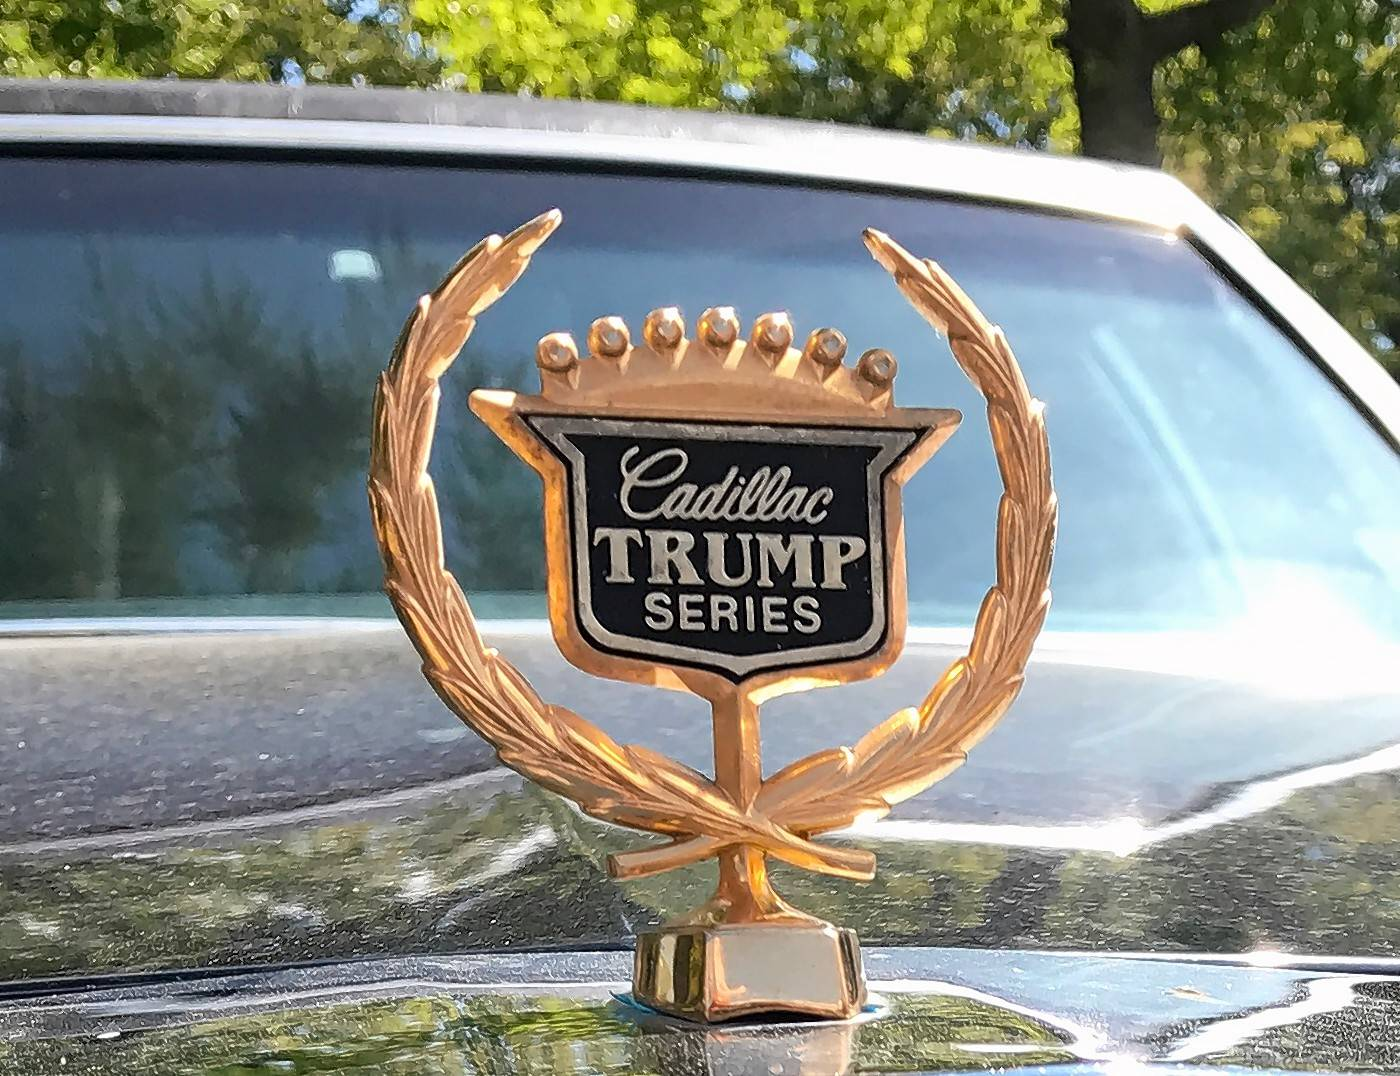 The Volo Auto Museum has purchased a Cadillac limousine that was made for Donald Trump before he became president. The hood ornament indicates its lineage.